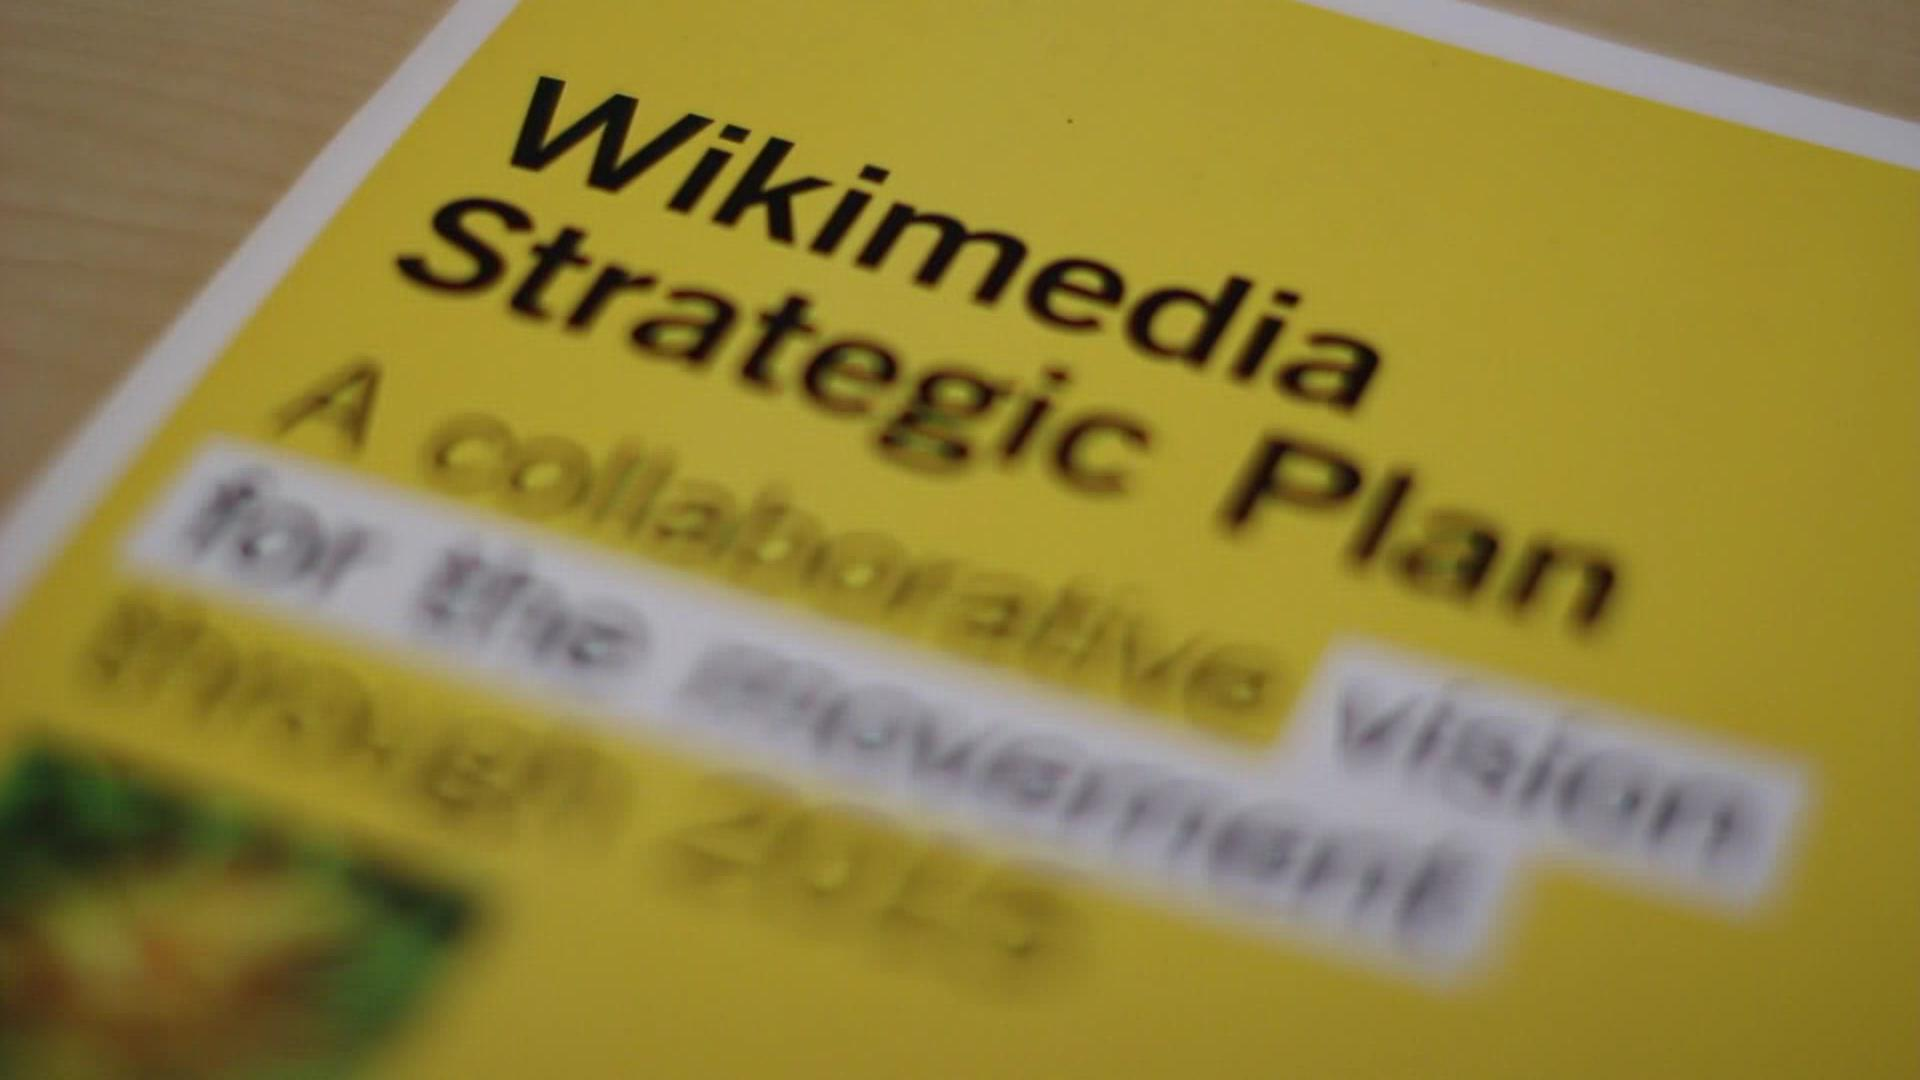 Wikimedia Strategic Plan.ogv